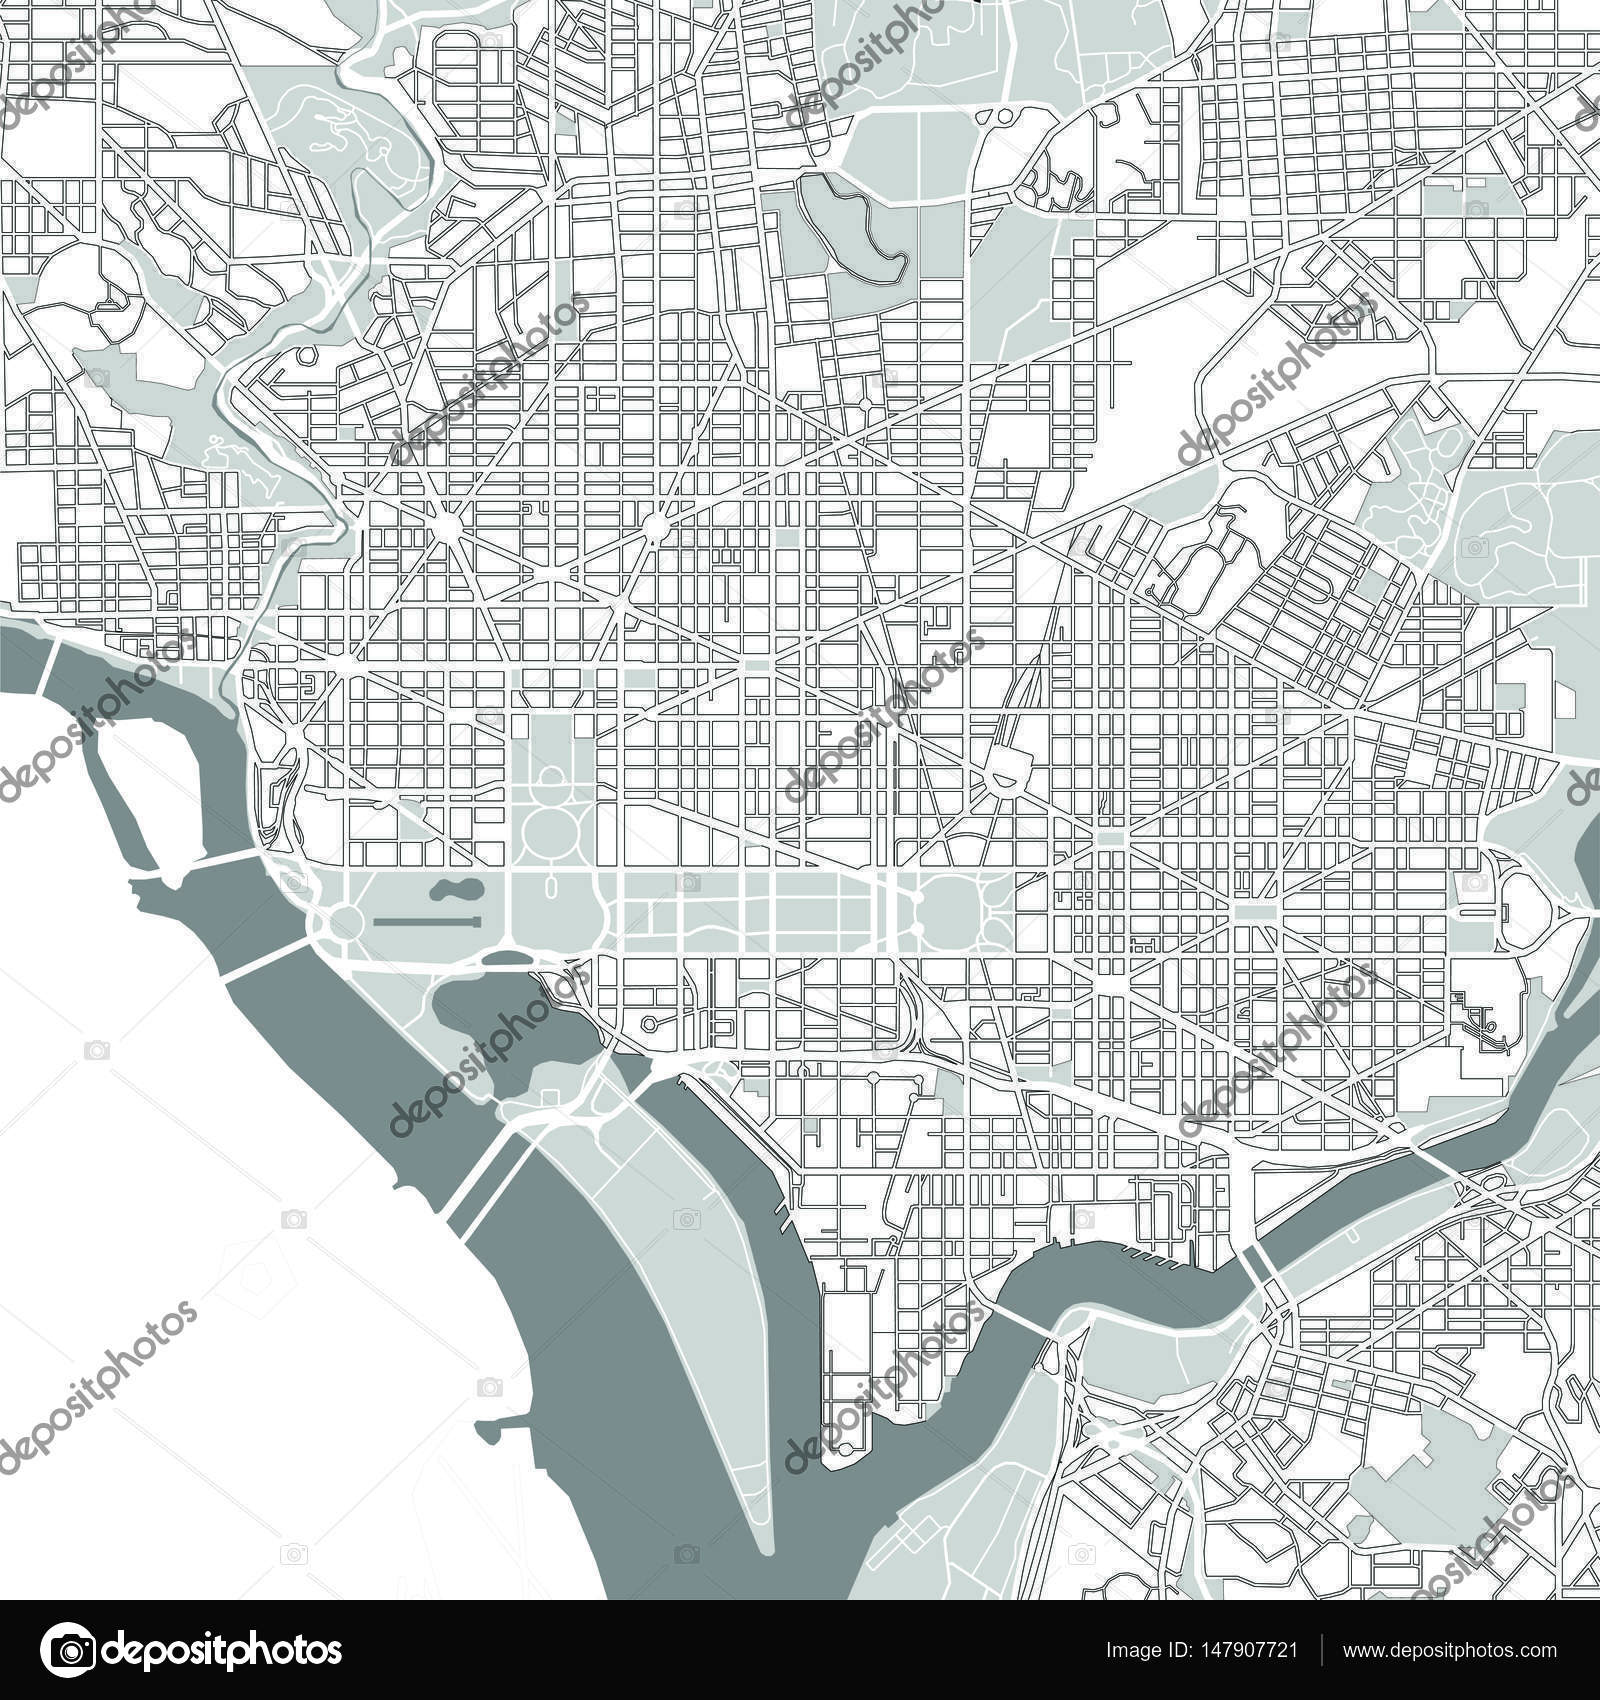 Washington Dc Map Download.Map Of The City Of Washington D C Usa Stock Vector C Tish11